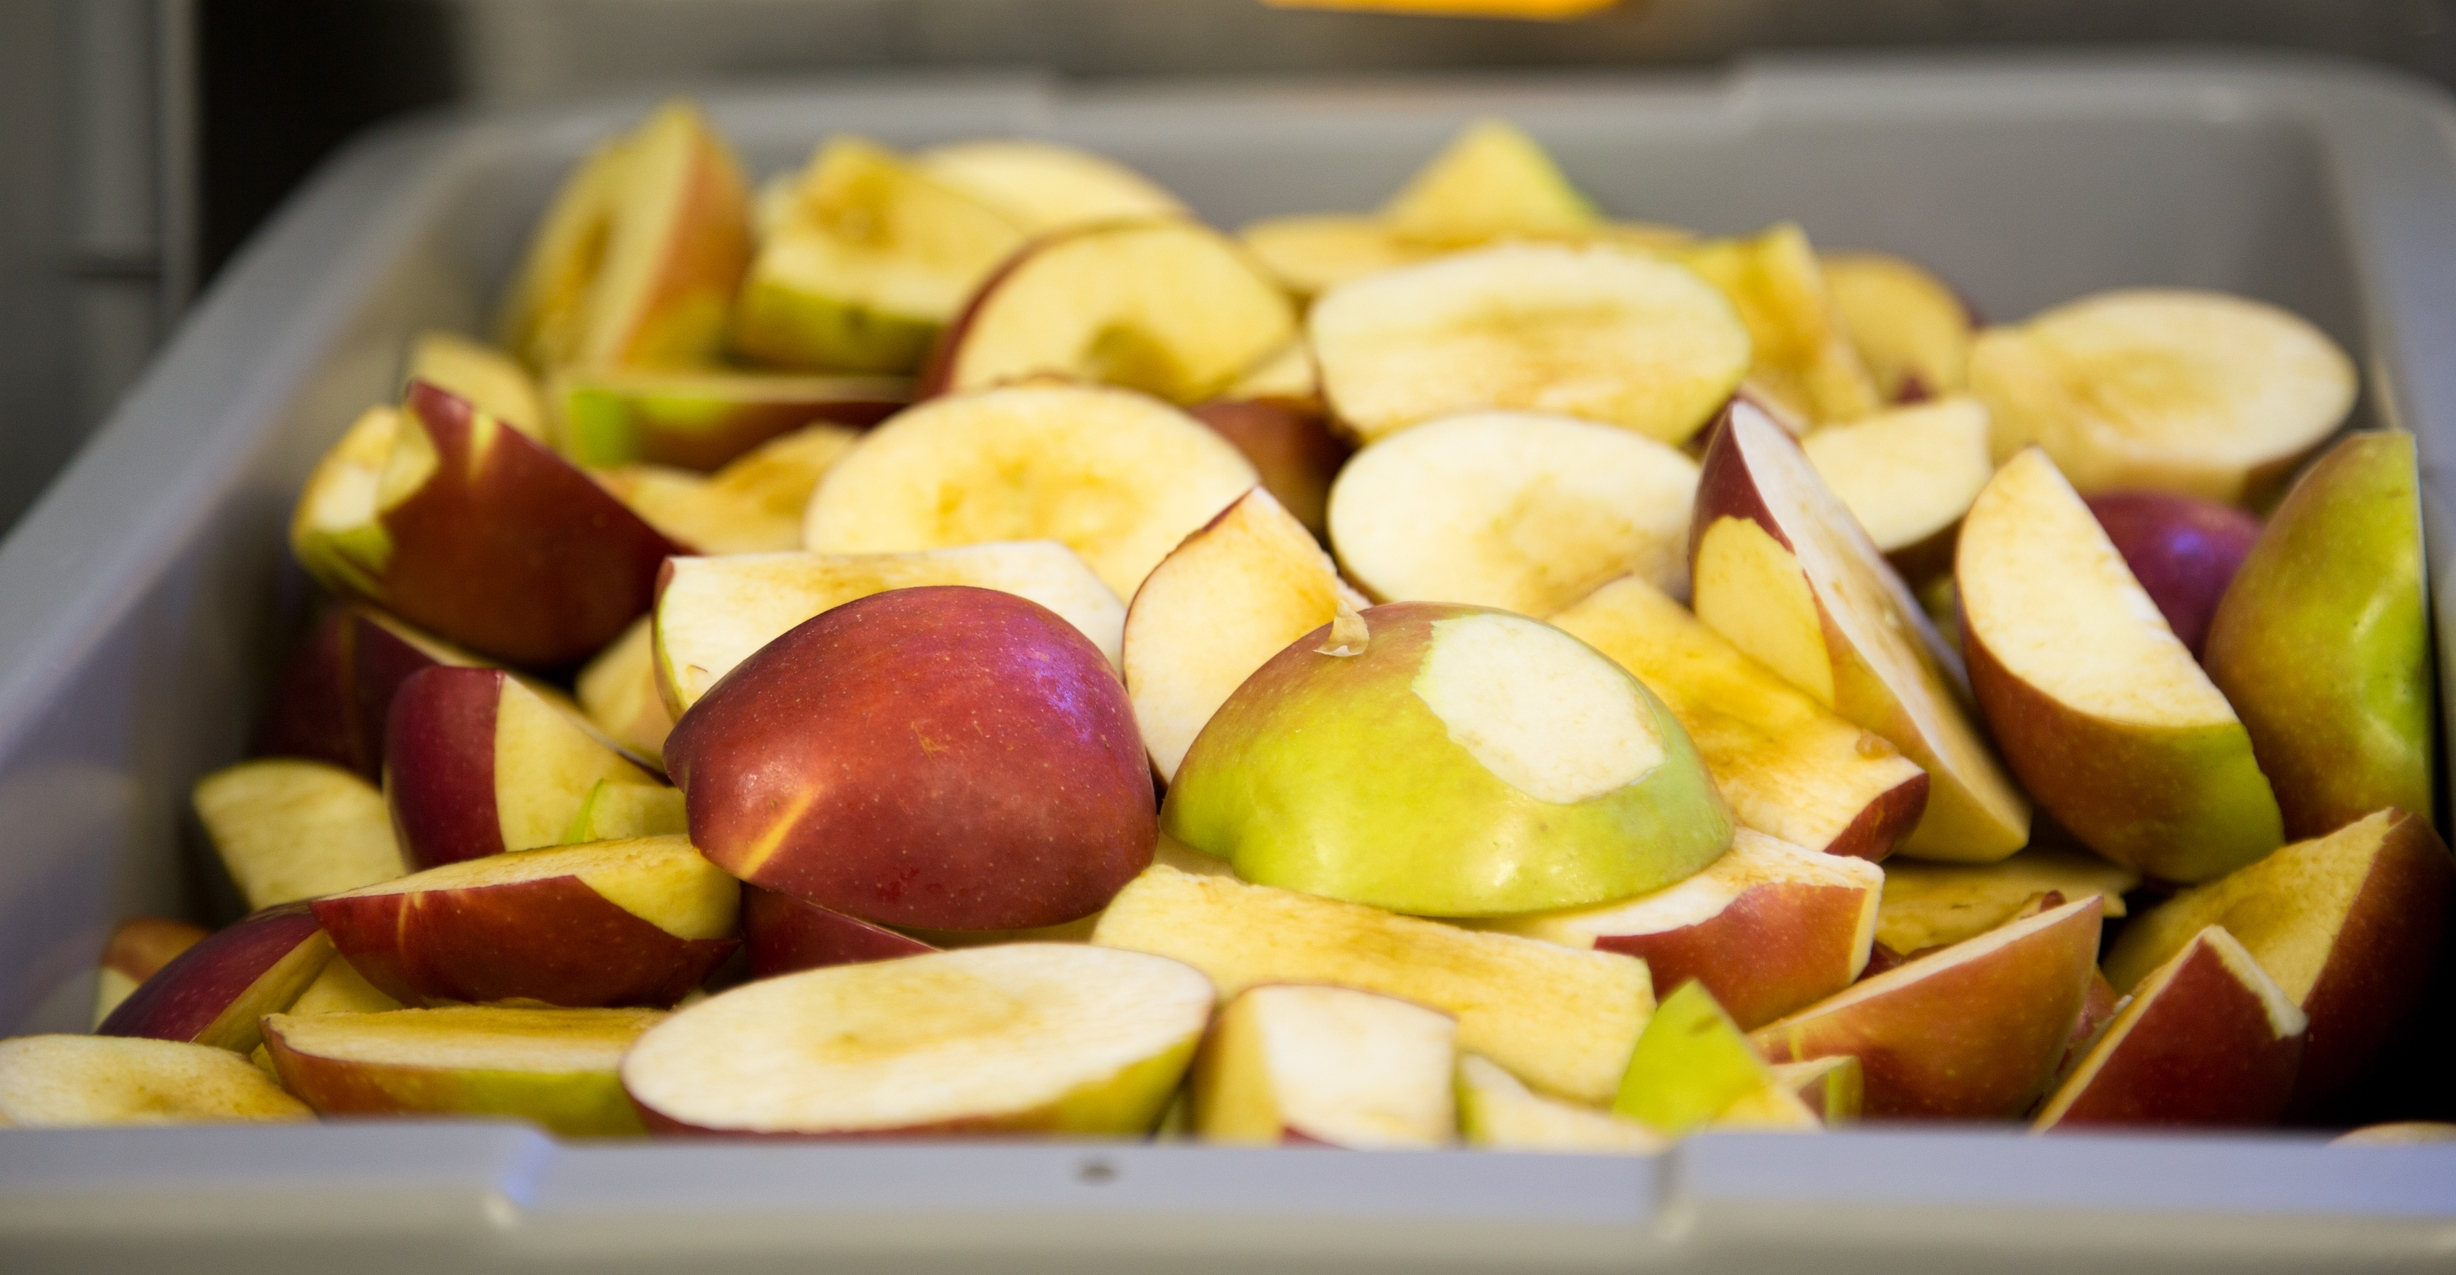 Apples for sauce or grinding for leather - no waste.